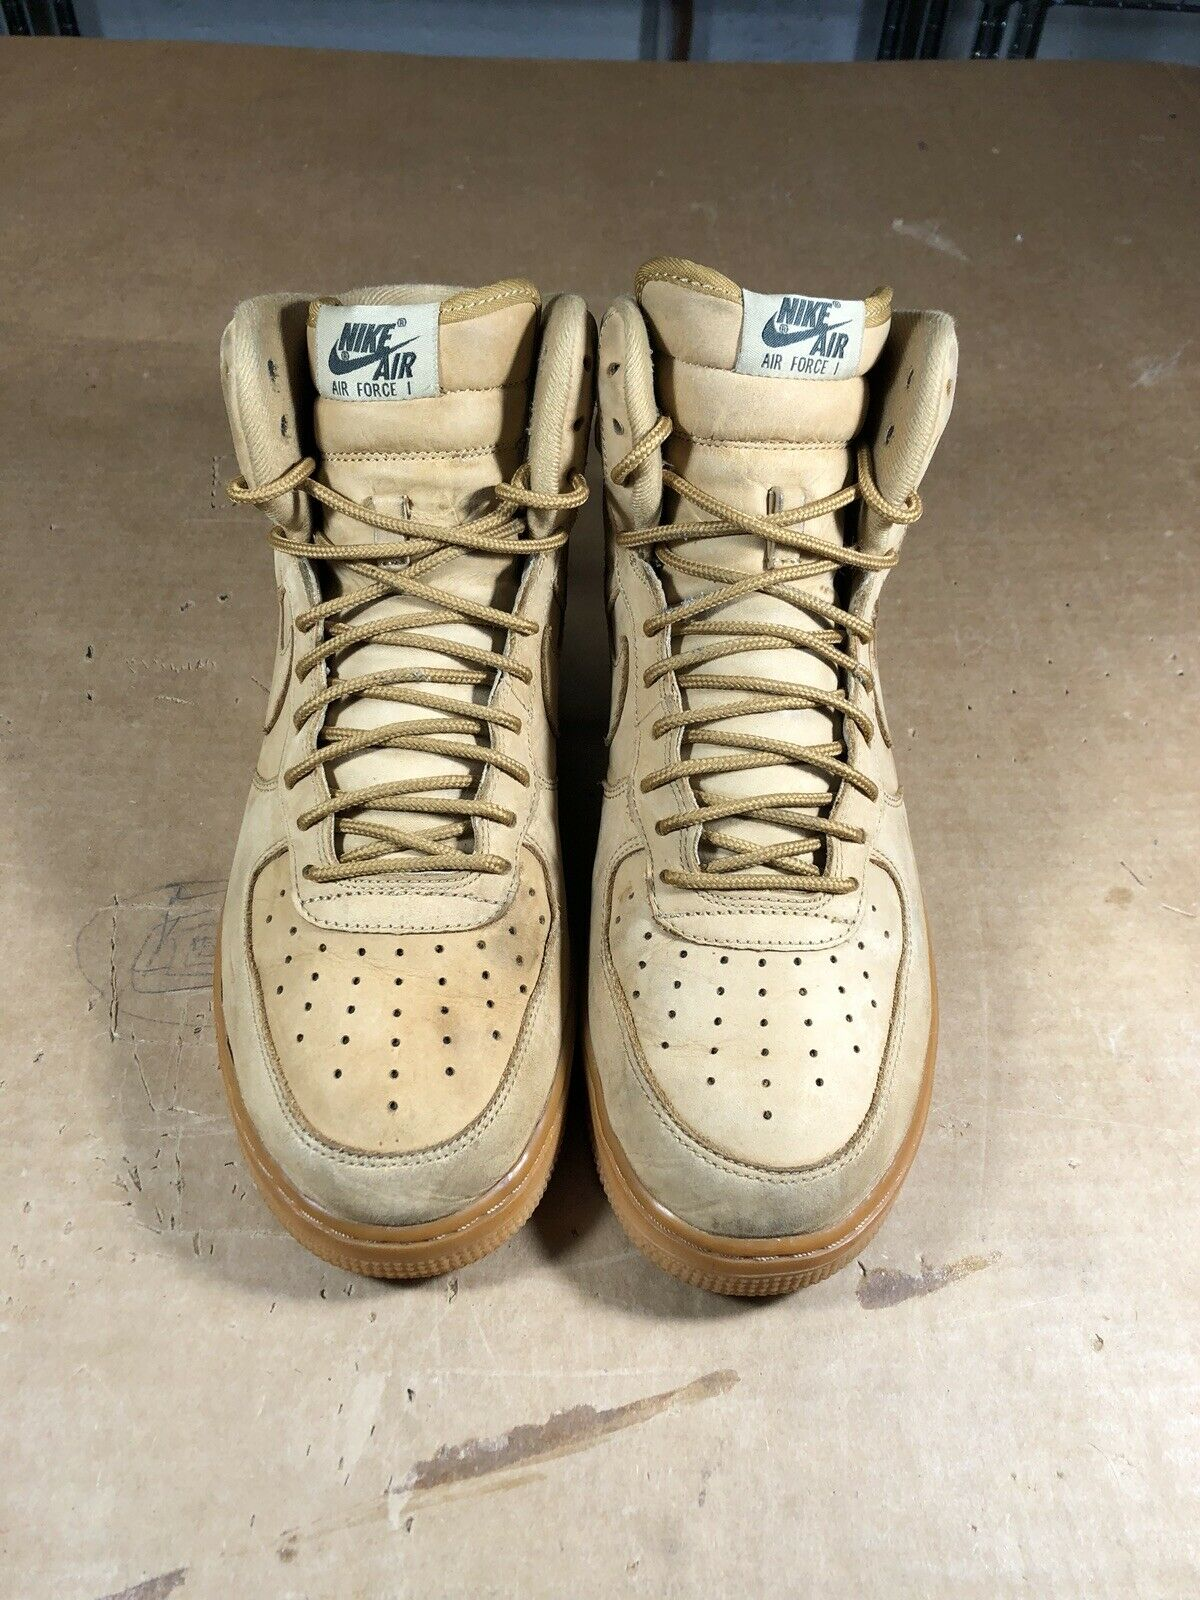 100% Authentic Nike Air Force Force Force 1 High Wheat (2016) Size 10 882096 200 6cc7c4